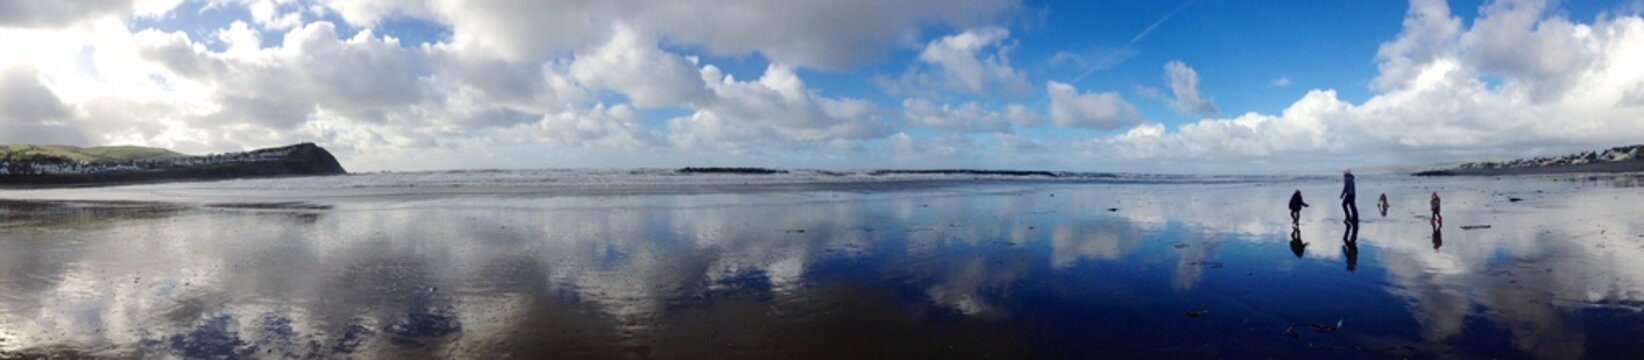 Panoramic View Of Frozen Sea Against Sky